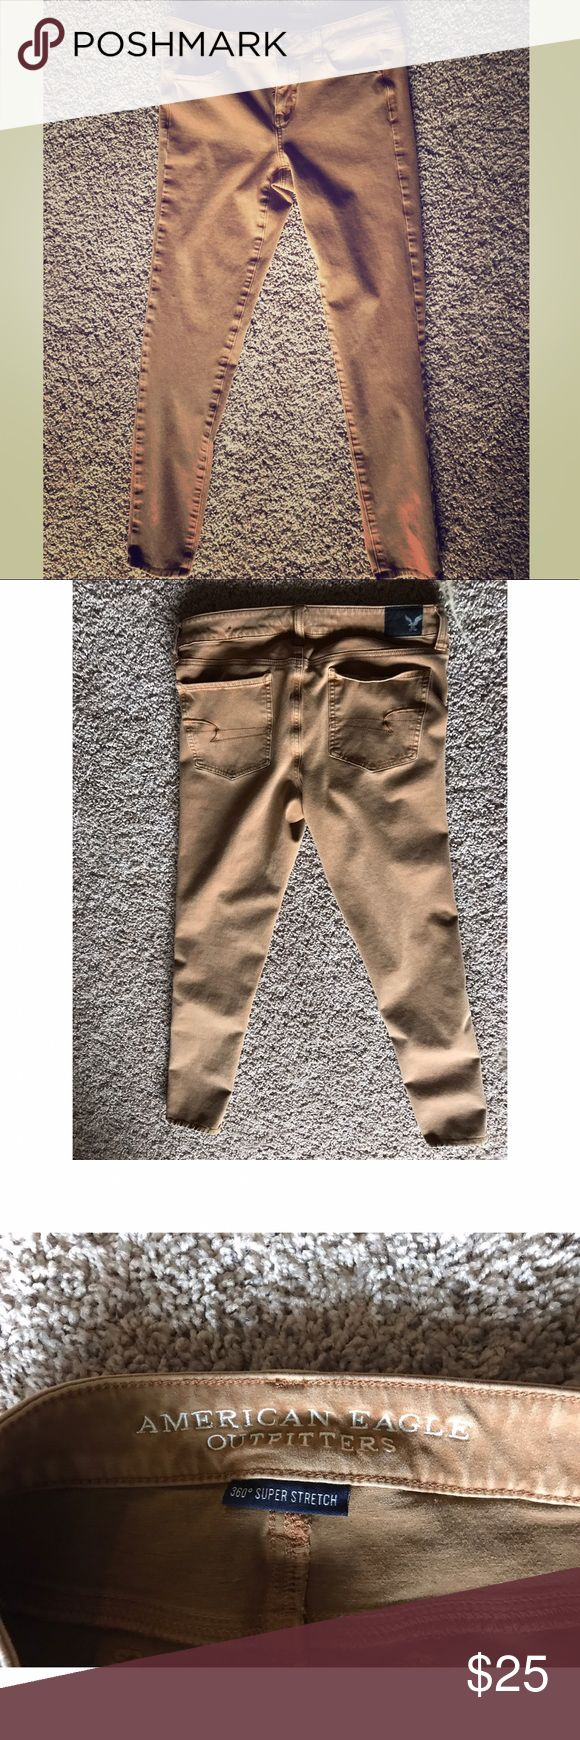 American Eagle Khaki Skinny Jeans WORN ONCE. Fit like a glove! Can fit anywhere between size 6-12. Stretchy to fit any shape. NOT DENIM. American Eagle Outfitters Pants Skinny